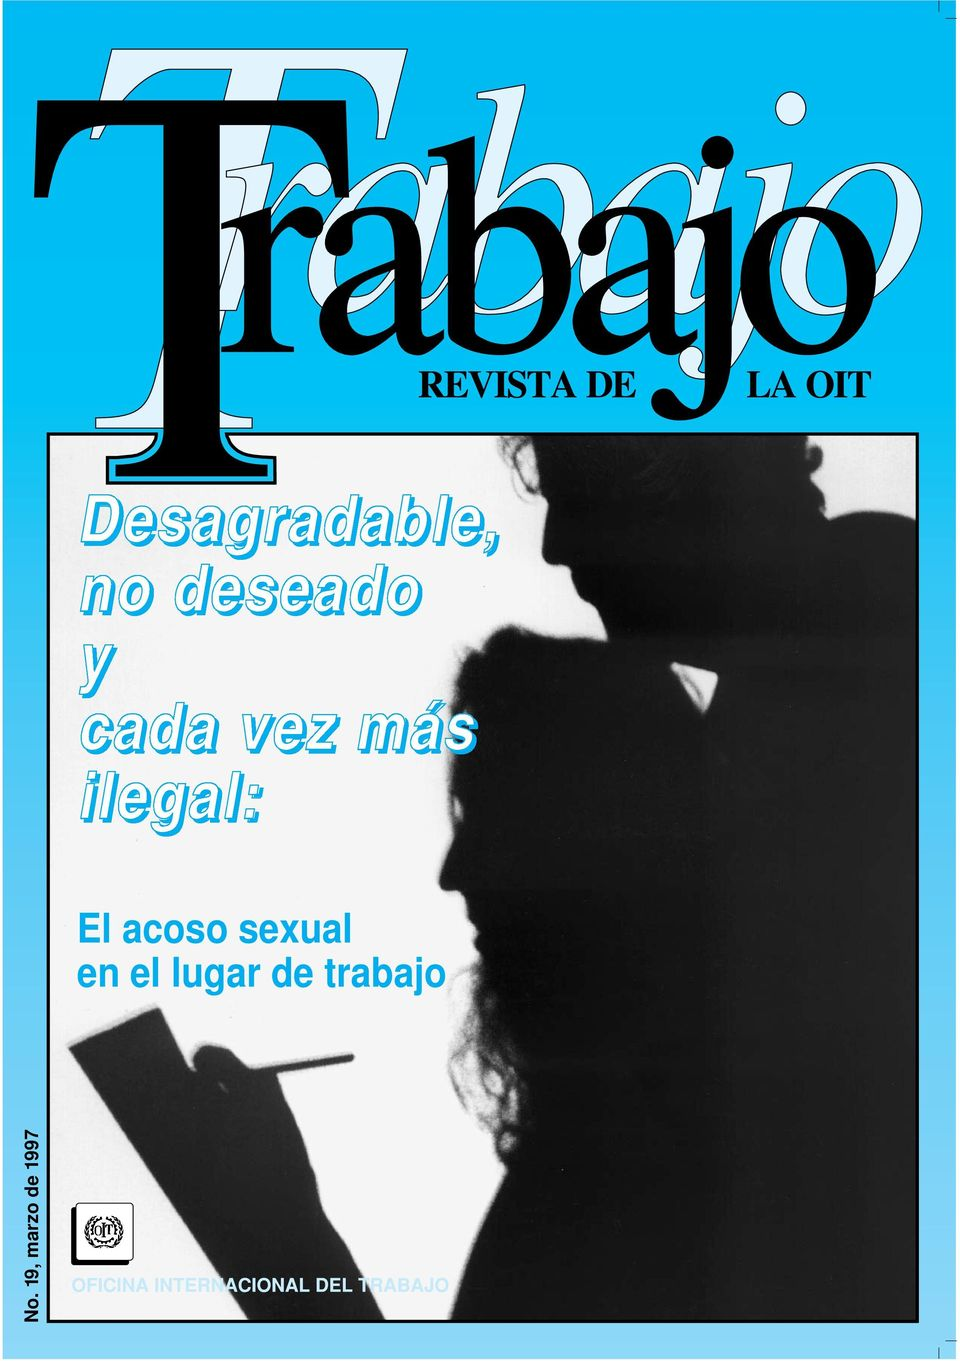 ilegal: El acoso sexual en el